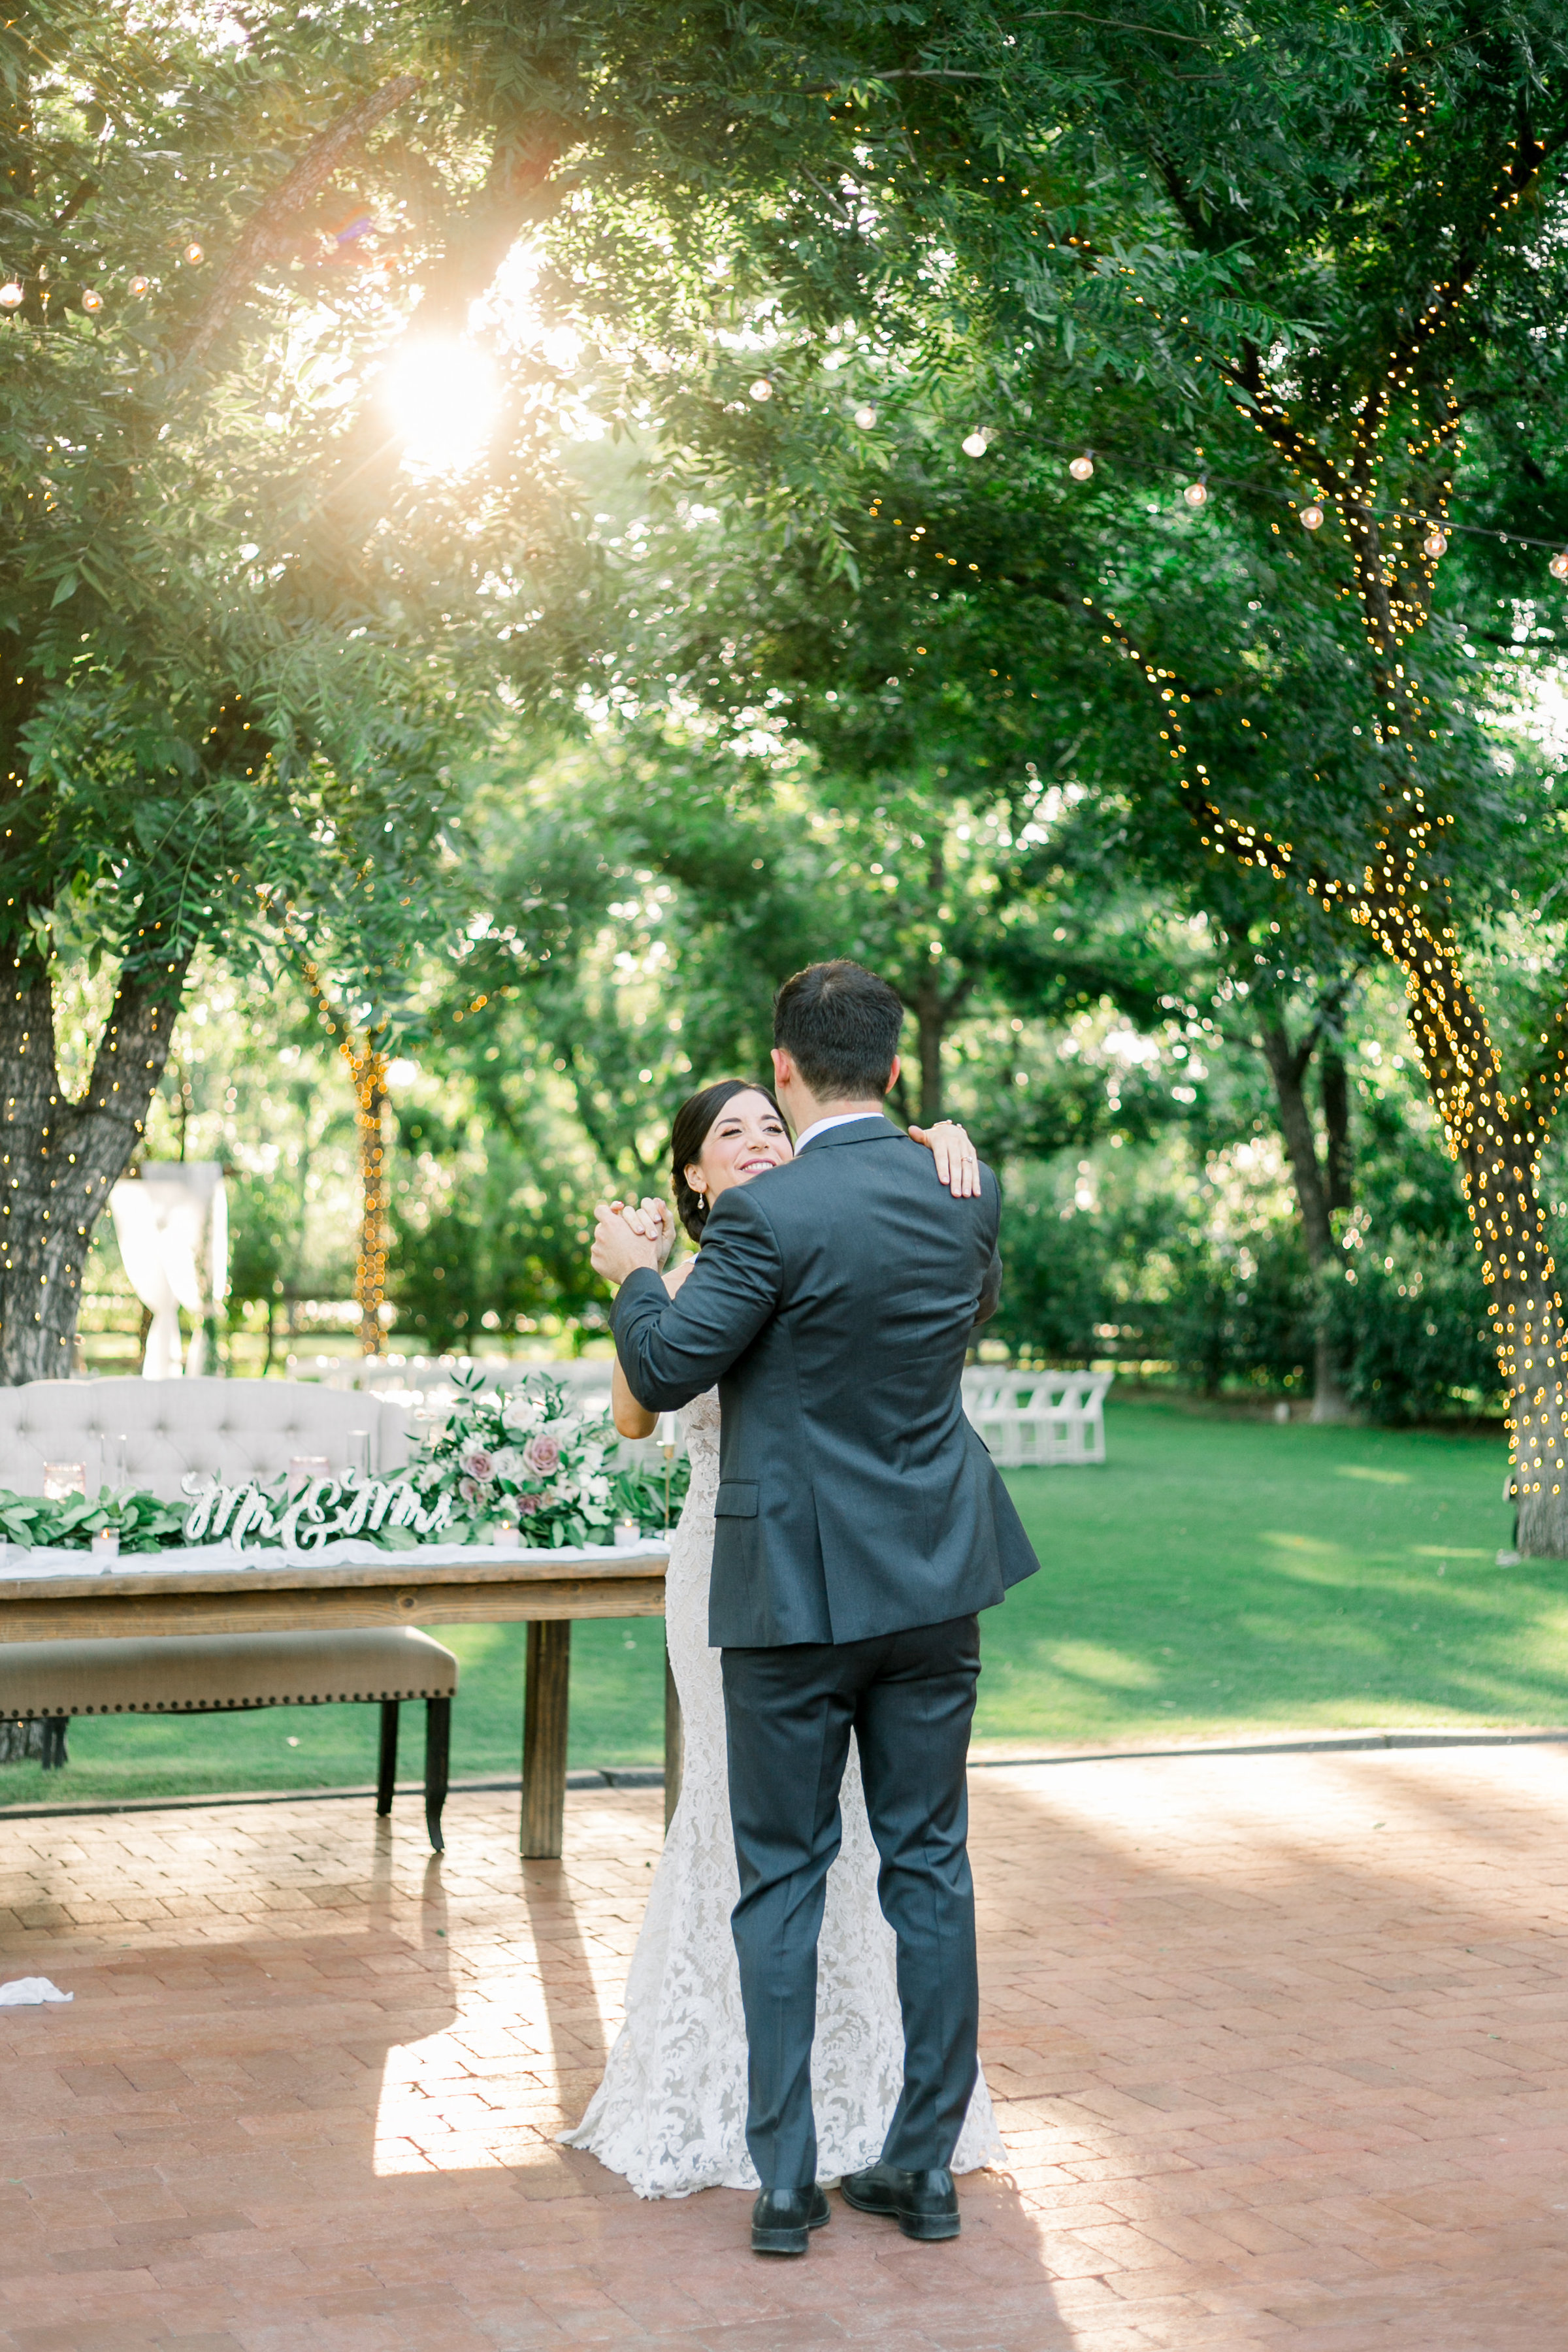 Karlie Colleen Photography - Venue At The Grove - Arizona Wedding - Maggie & Grant -94